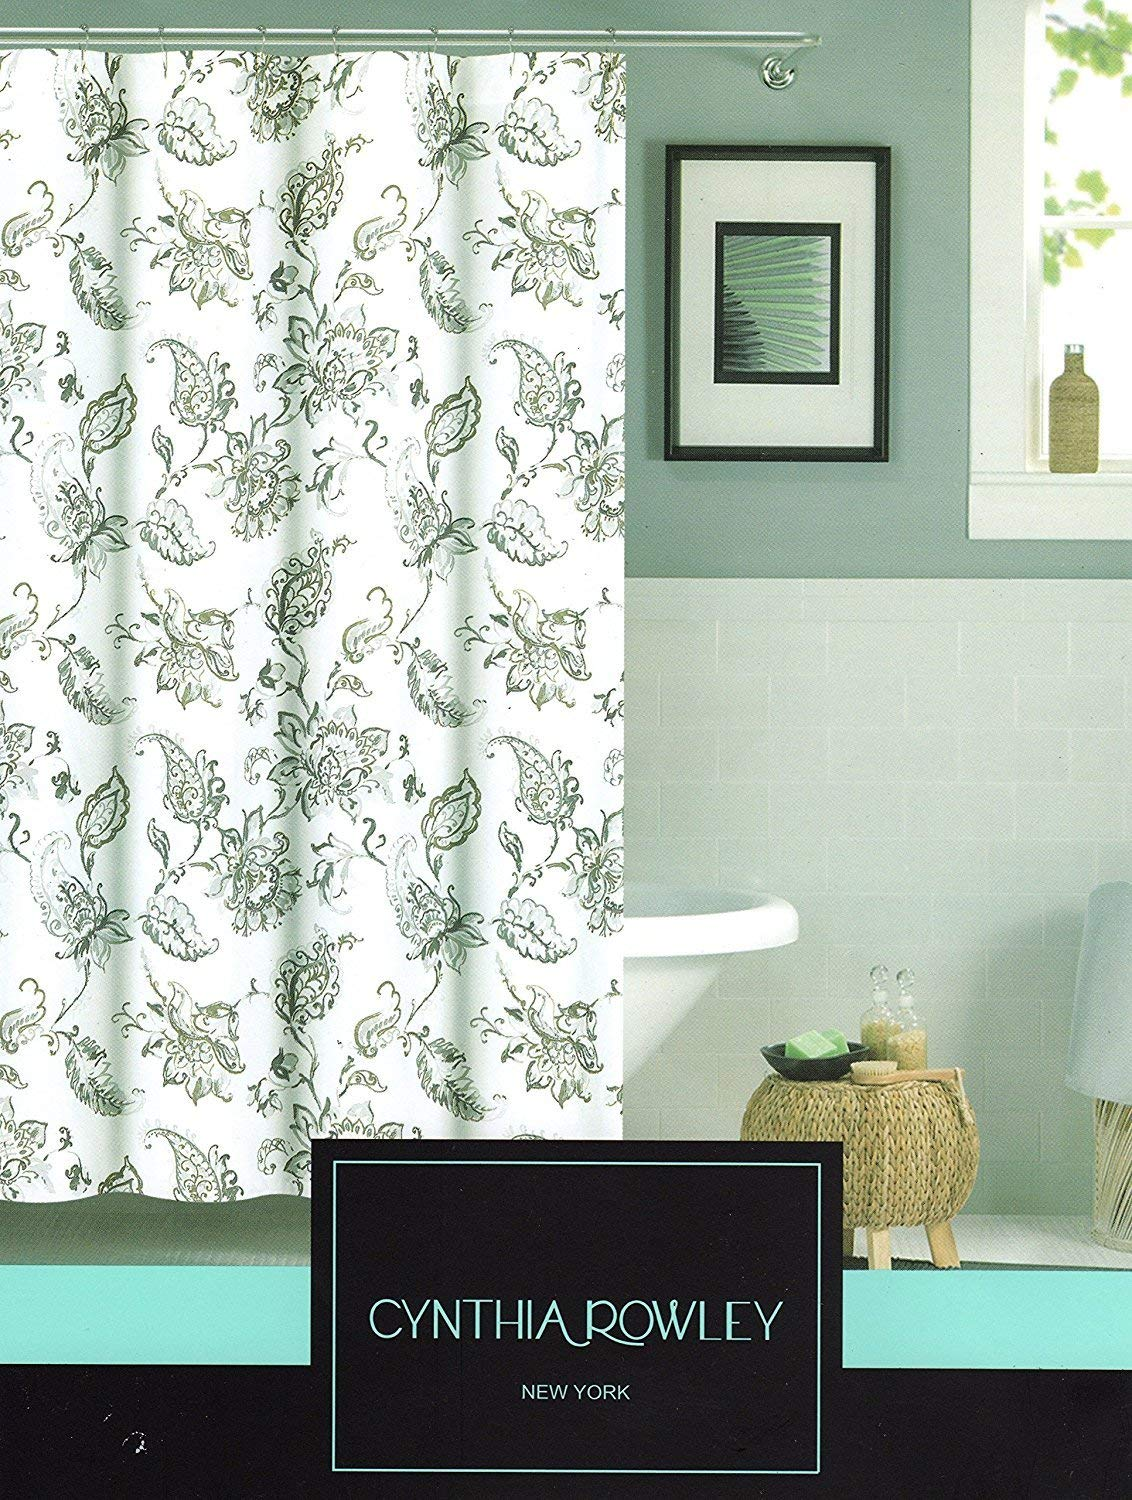 Cynthia Rowley New York Jacobean Flowers Branches Fabric Shower Curtain 72 By